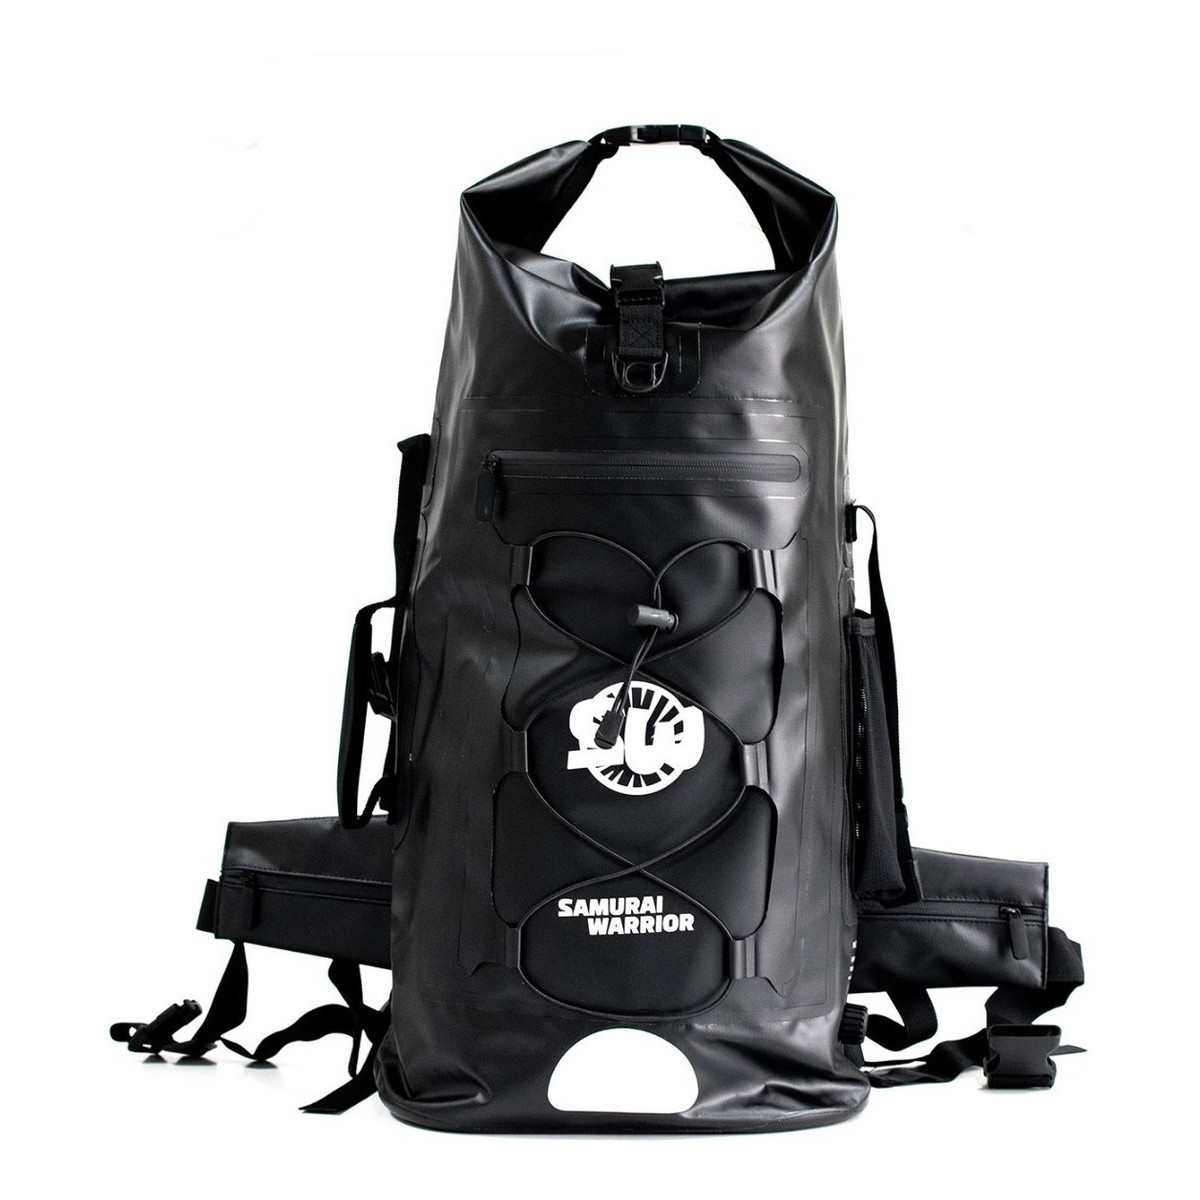 Mochila Estanco Samurai Warrior Impermeable 35/55 Litros